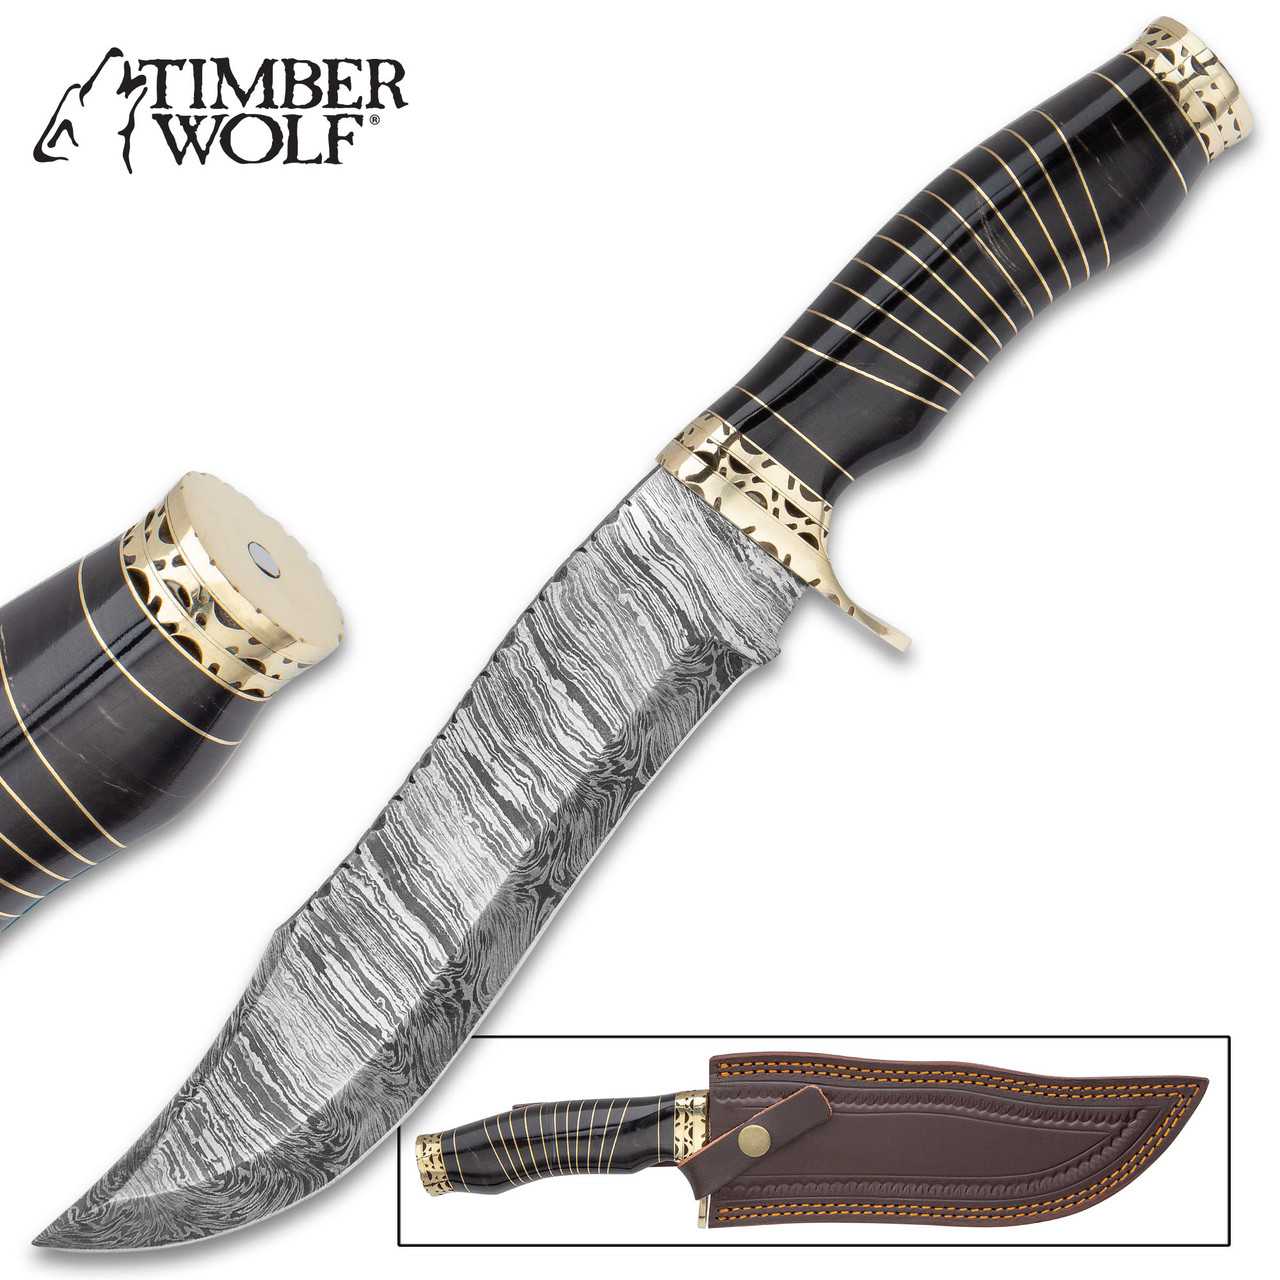 Timber Wolf Anubis Fixed Blade Knife With Sheath